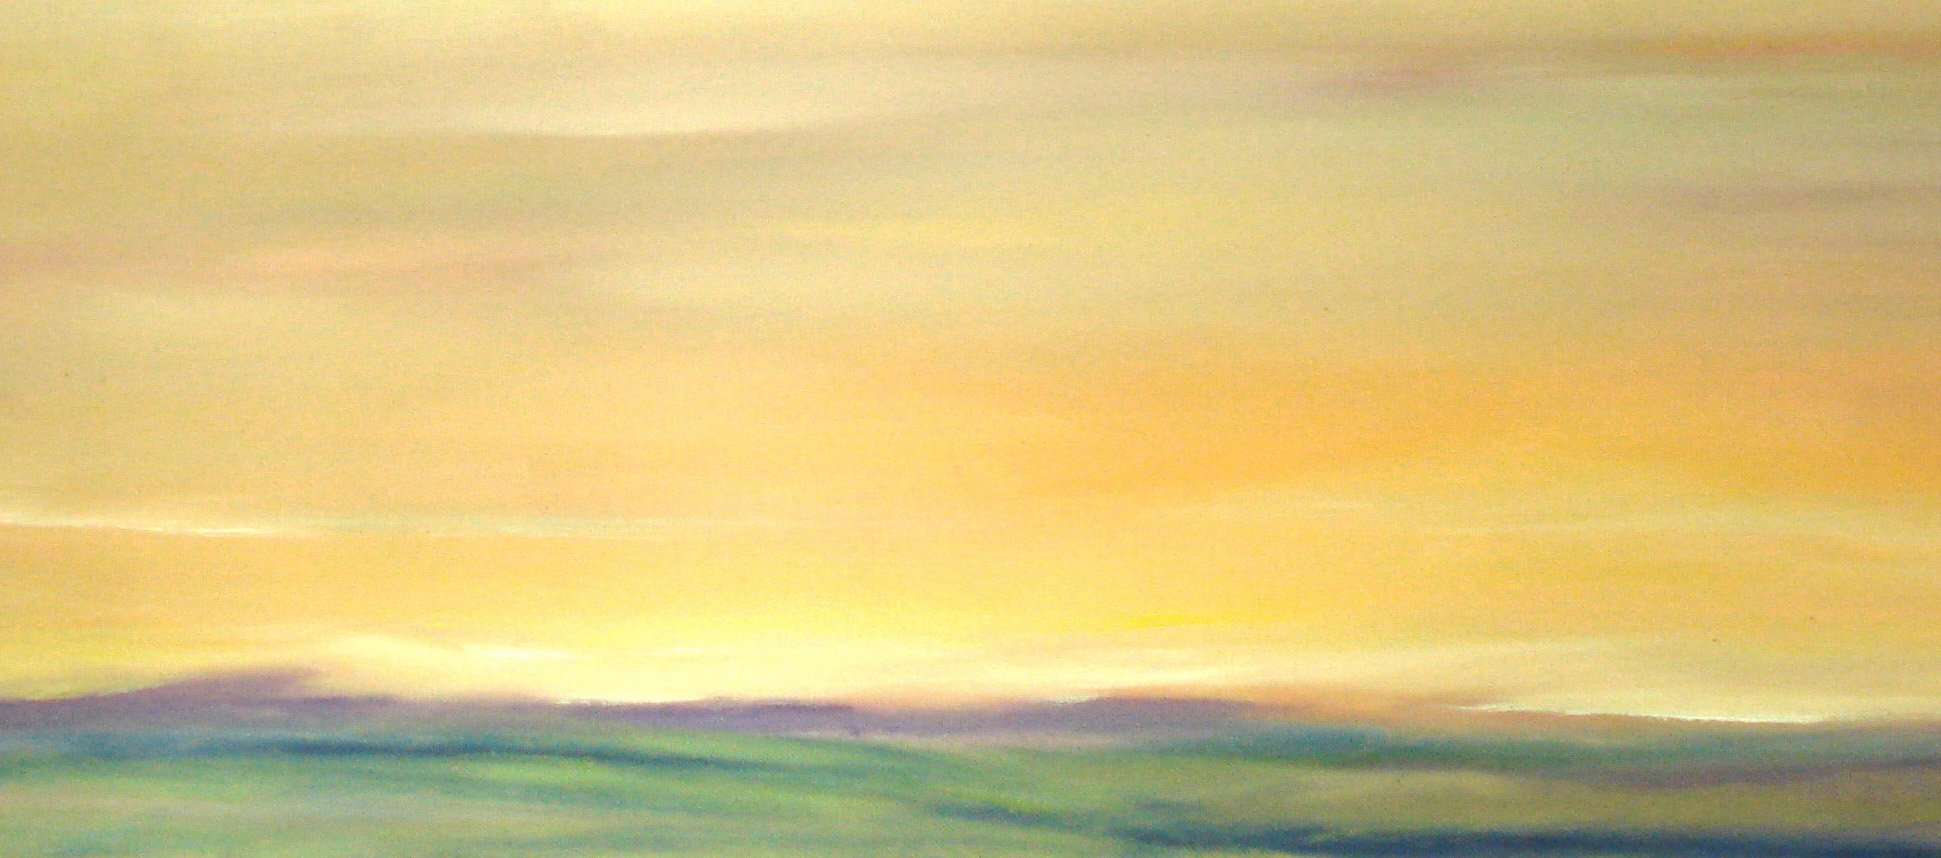 https://0201.nccdn.net/1_2/000/000/09e/e28/soft-yellow-sky-cropped.jpg